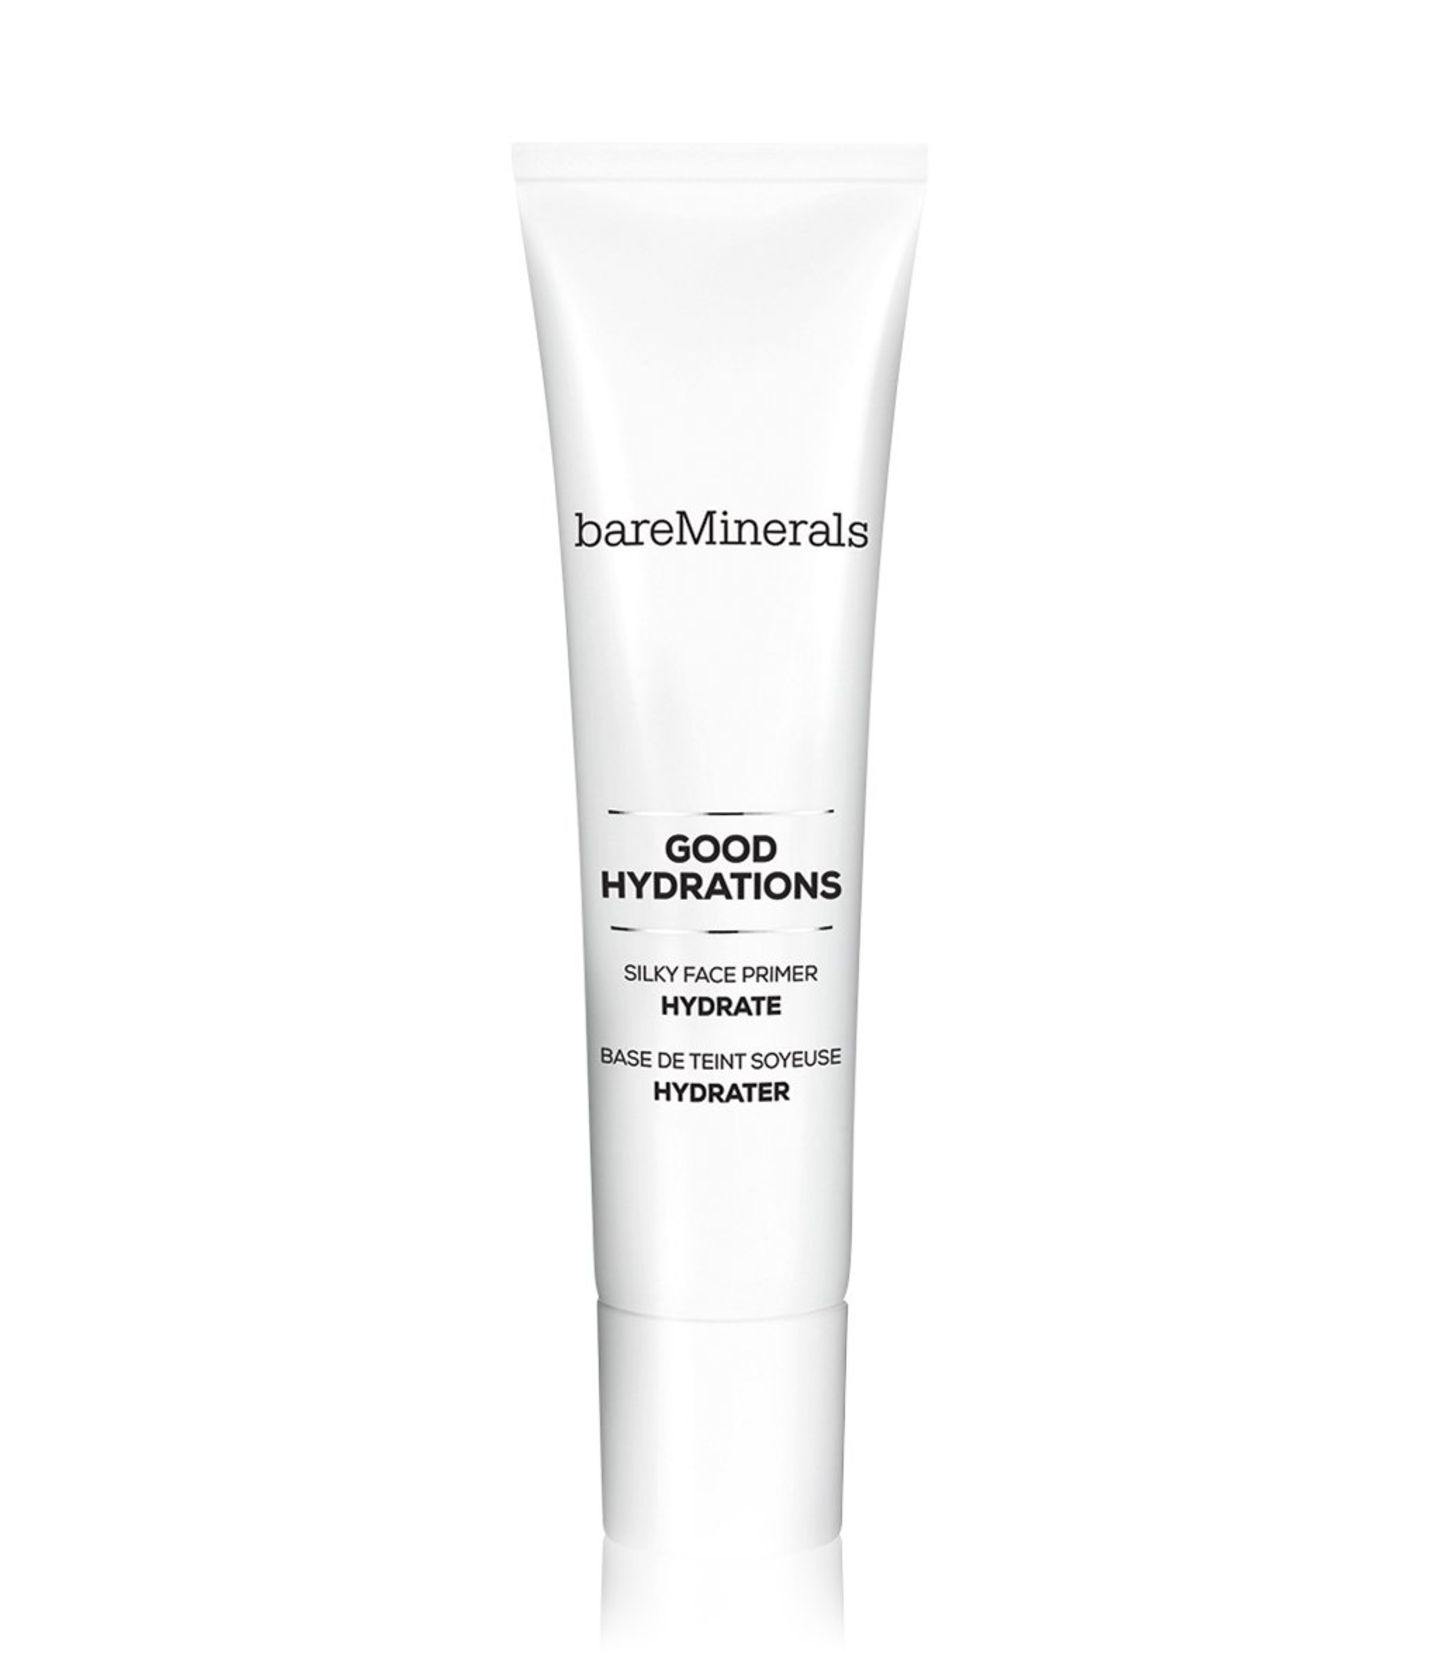 Bad Skin Day: bareMinerals Good Hydrations Silky Face